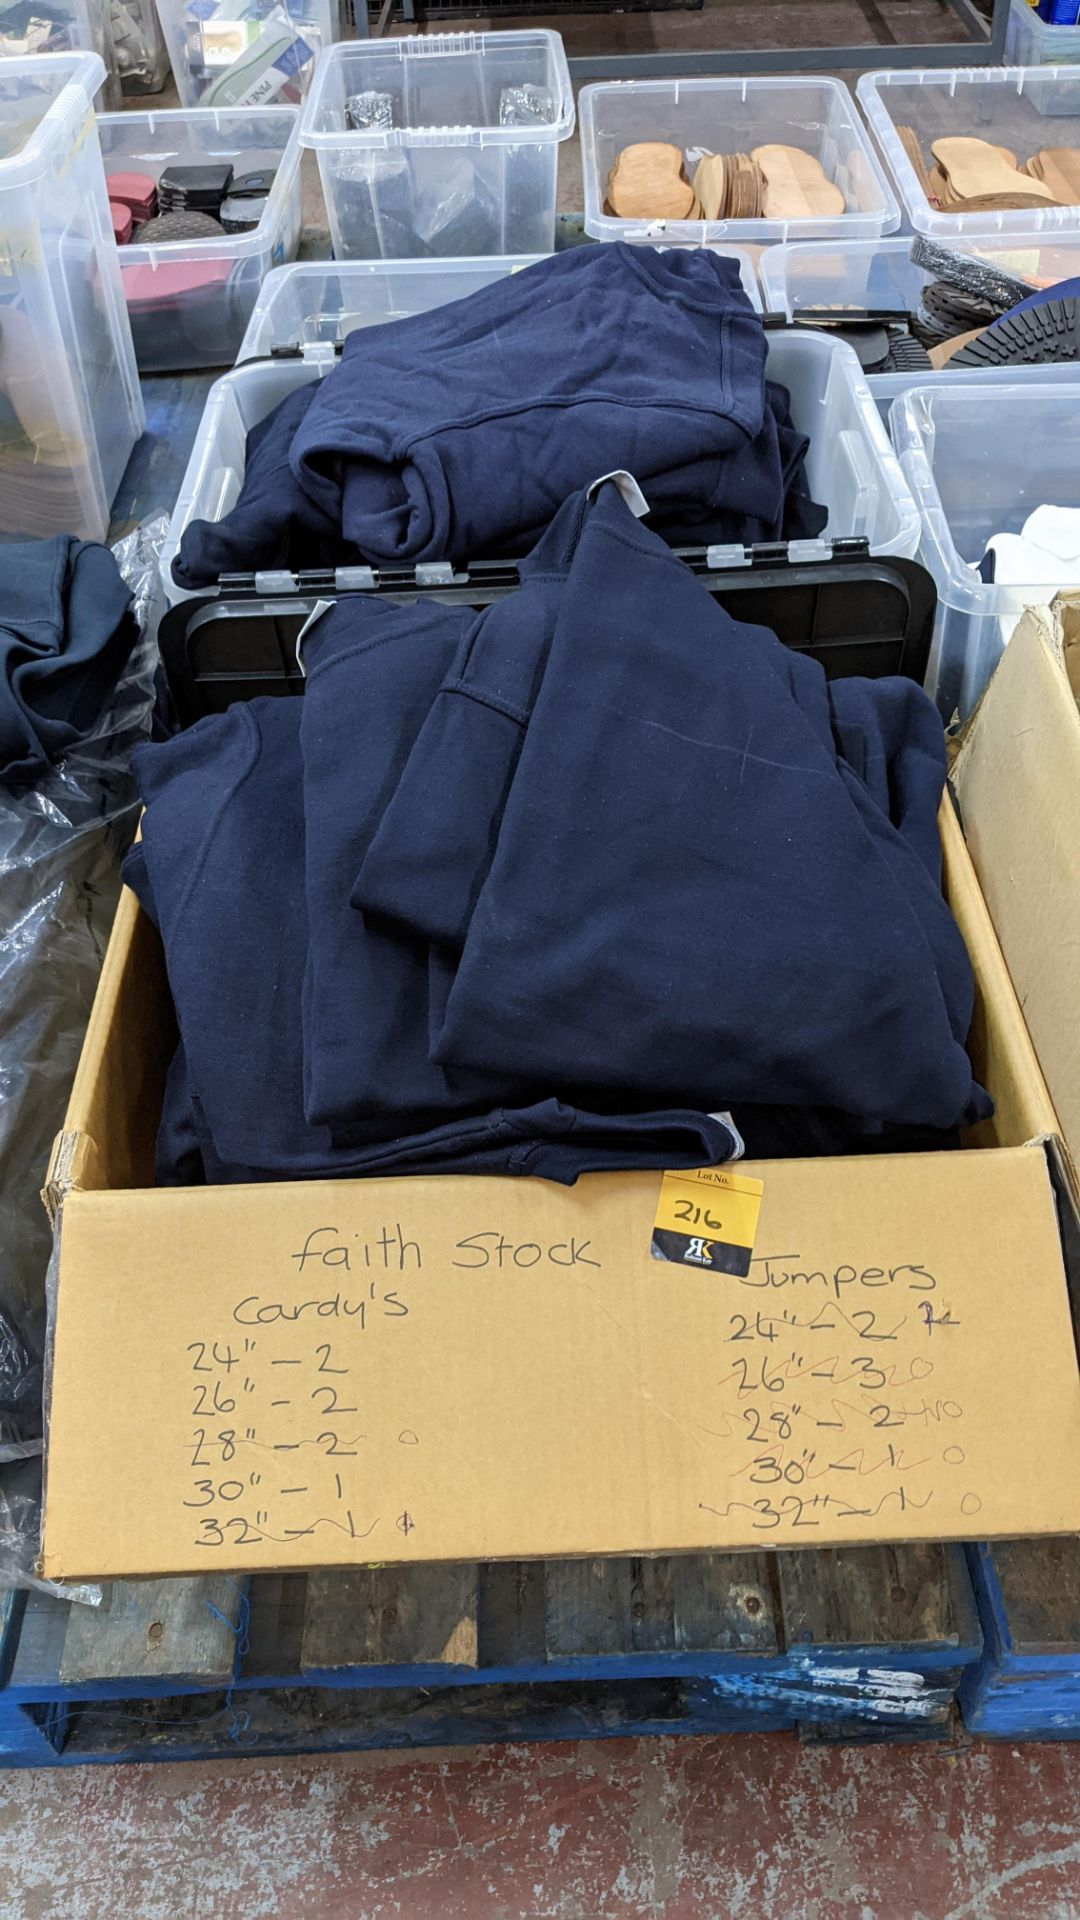 Approx 26 off Absolute Apparel blue sweatshirts - the contents of 2 boxes/crates. NB boxes/crates e - Image 2 of 5